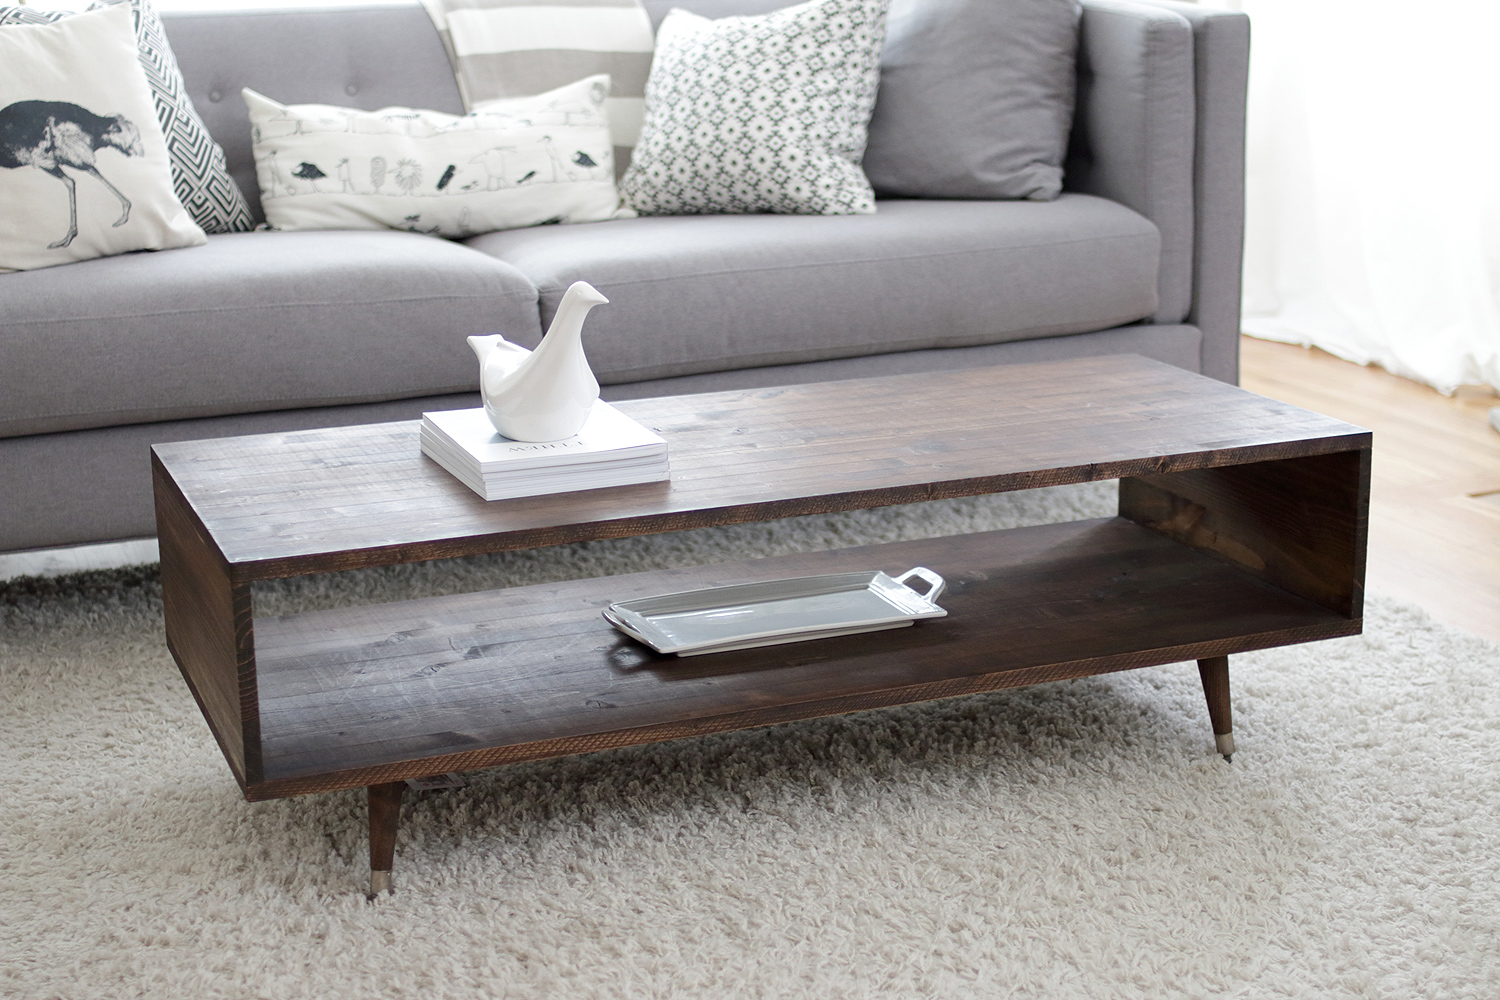 Build your own mid century modern coffee table for 60 bay on a coffee table geotapseo Gallery